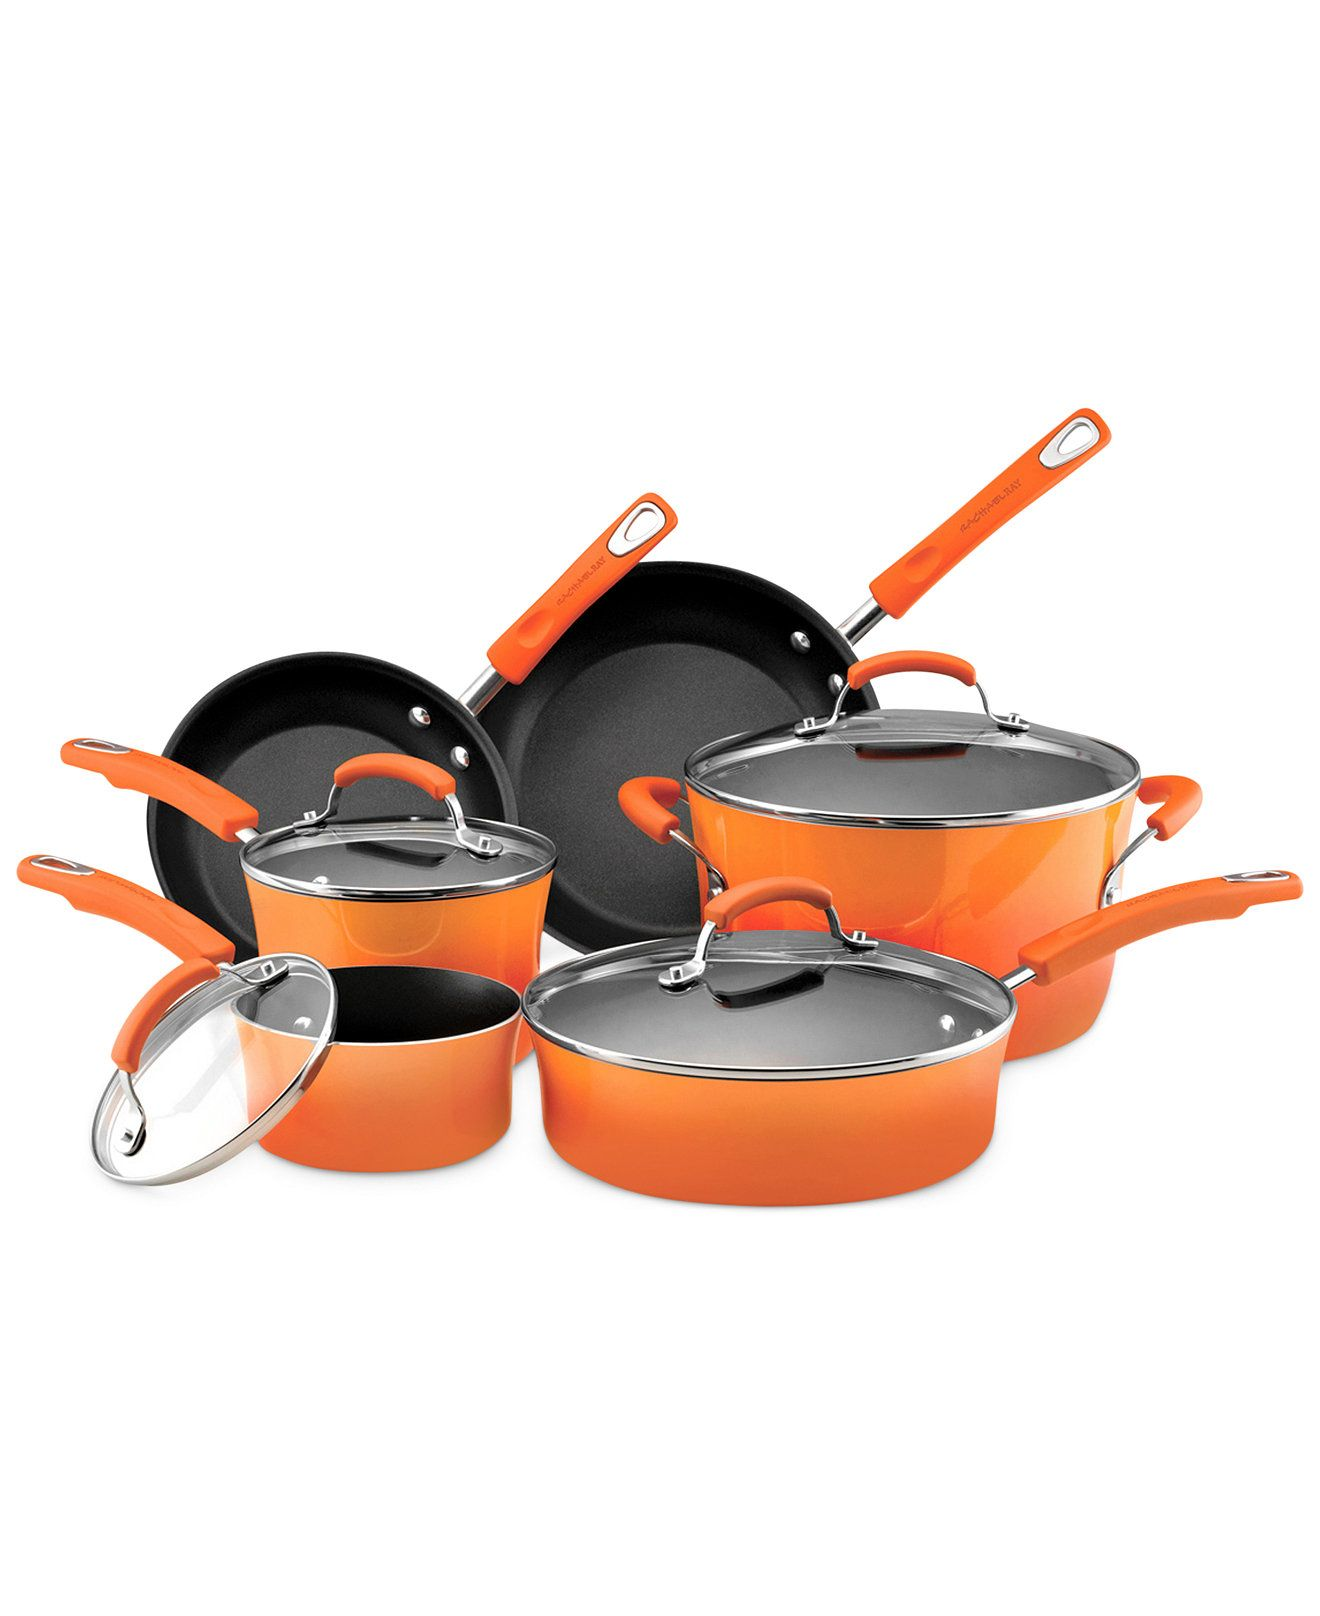 Turn up the heat with fire-hot orange cookware from Rachael ...